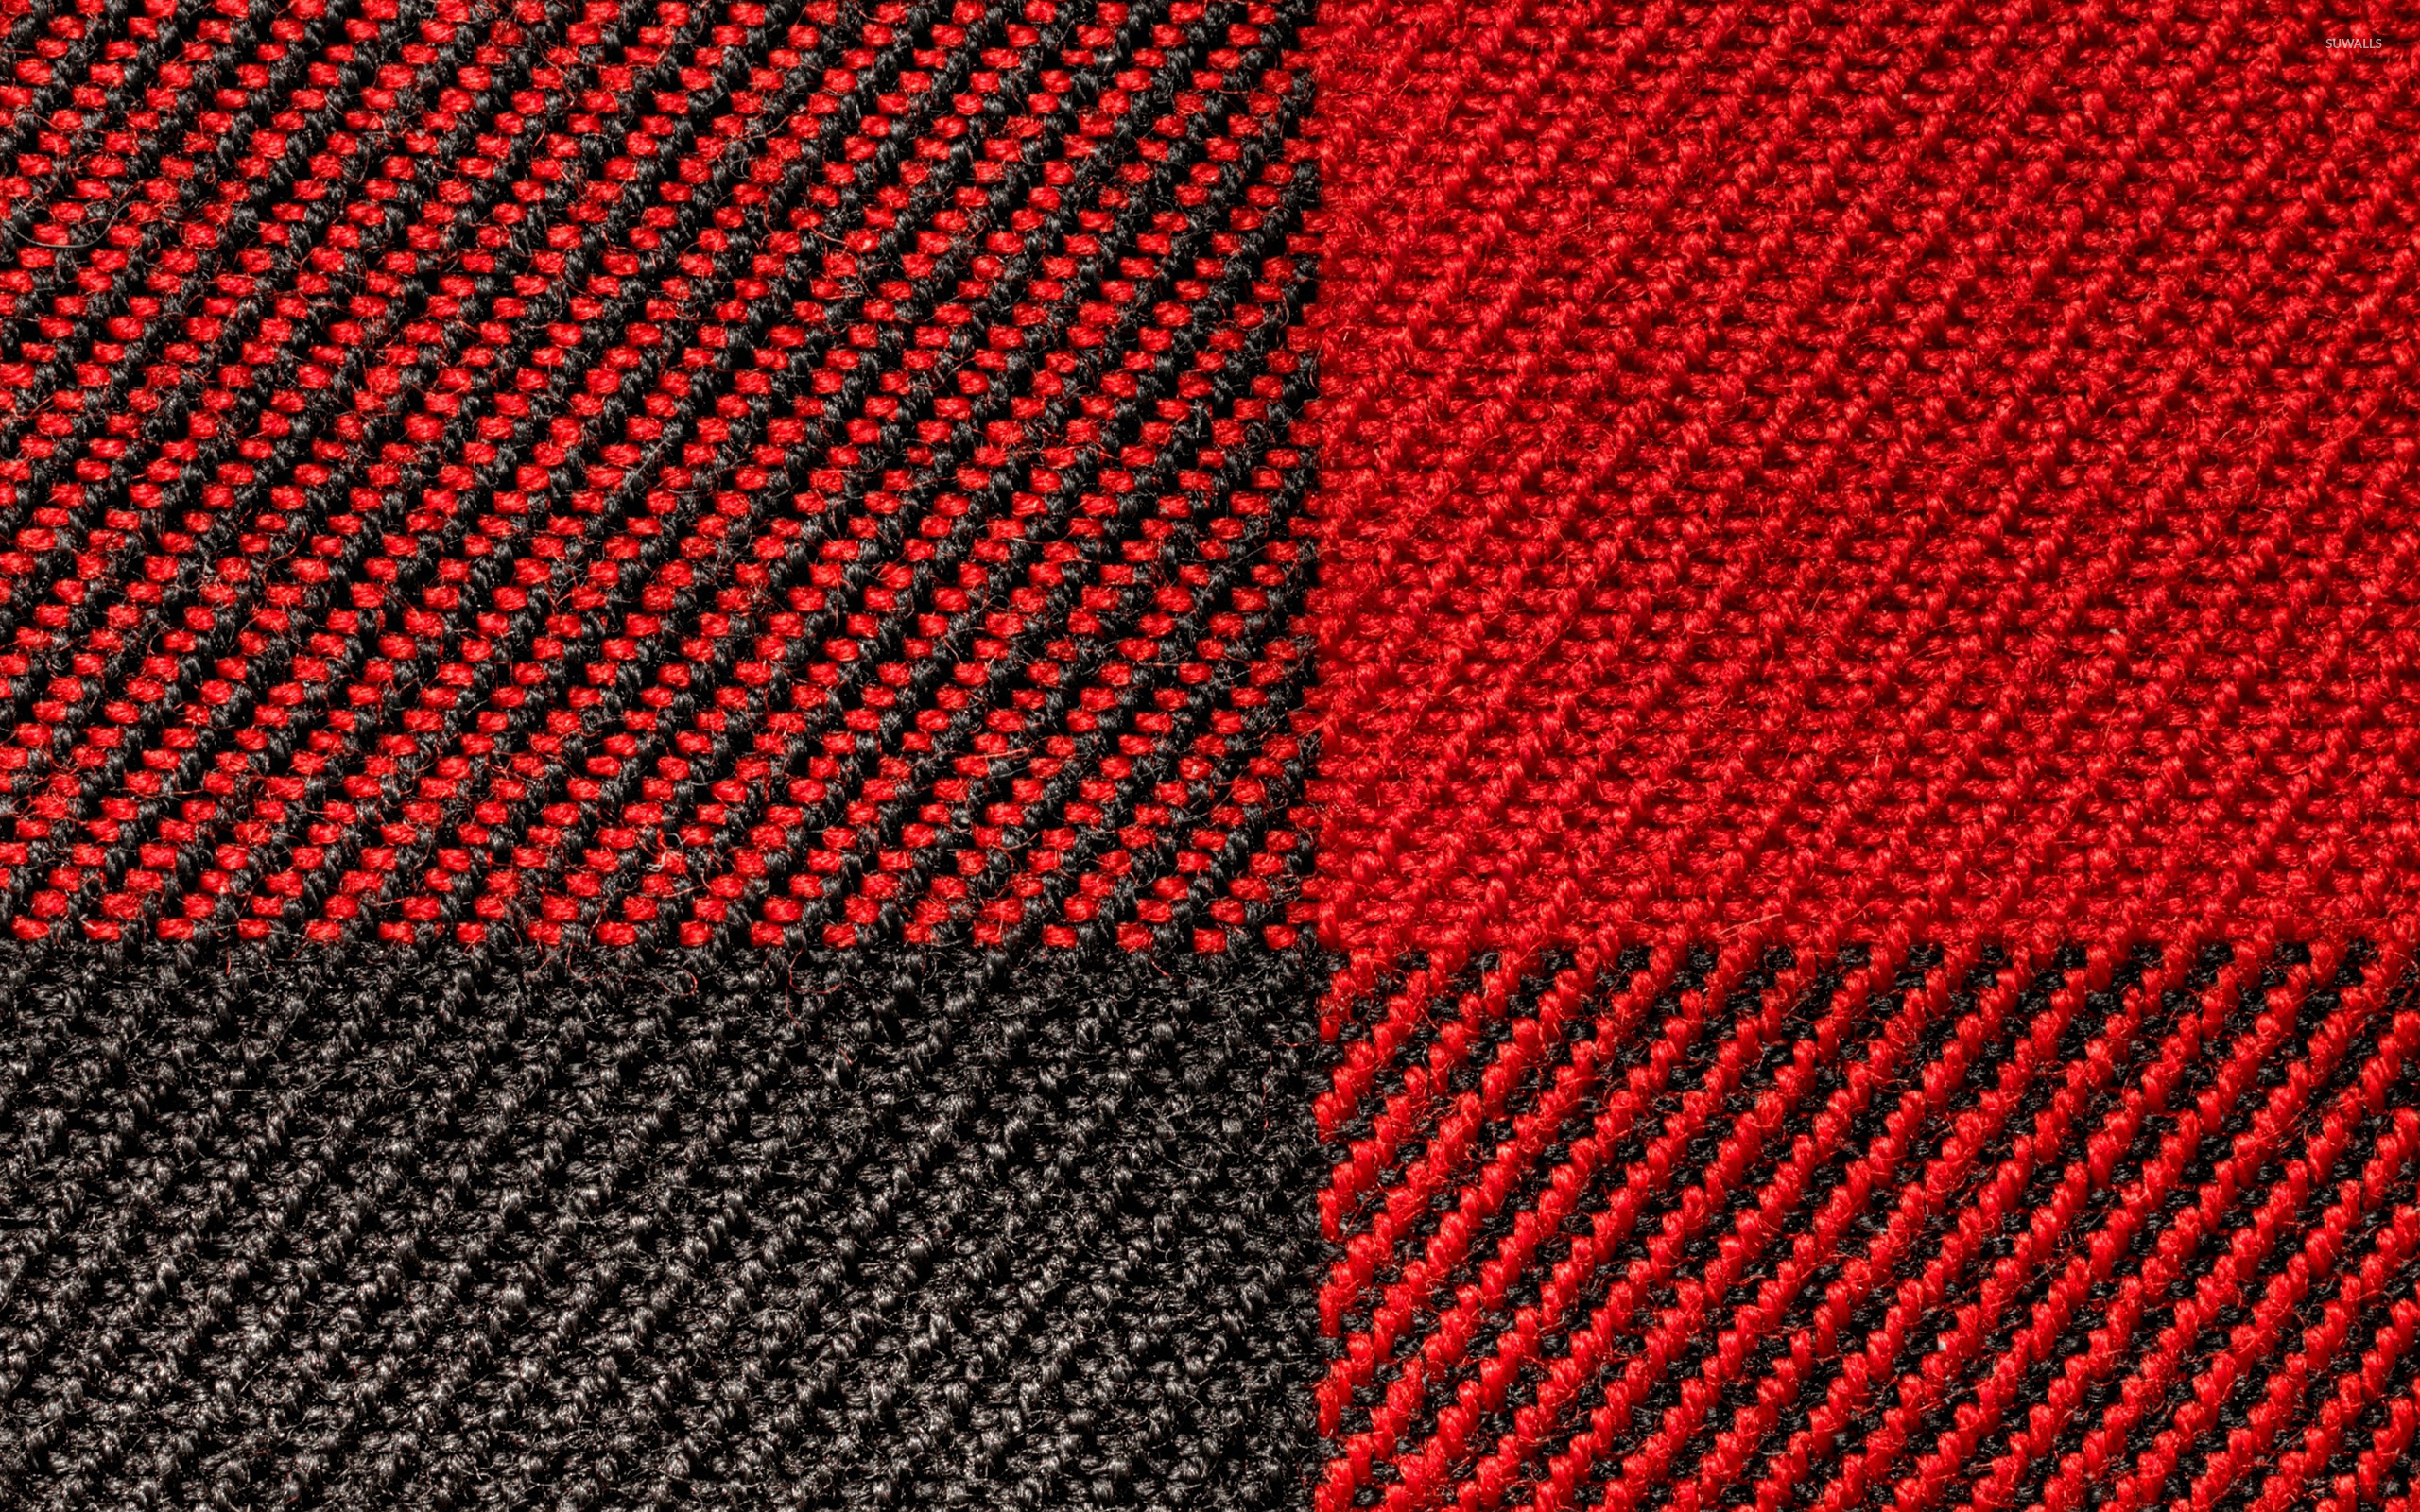 Knitting Wallpaper For Walls : Black and red knit wallpaper photography wallpapers